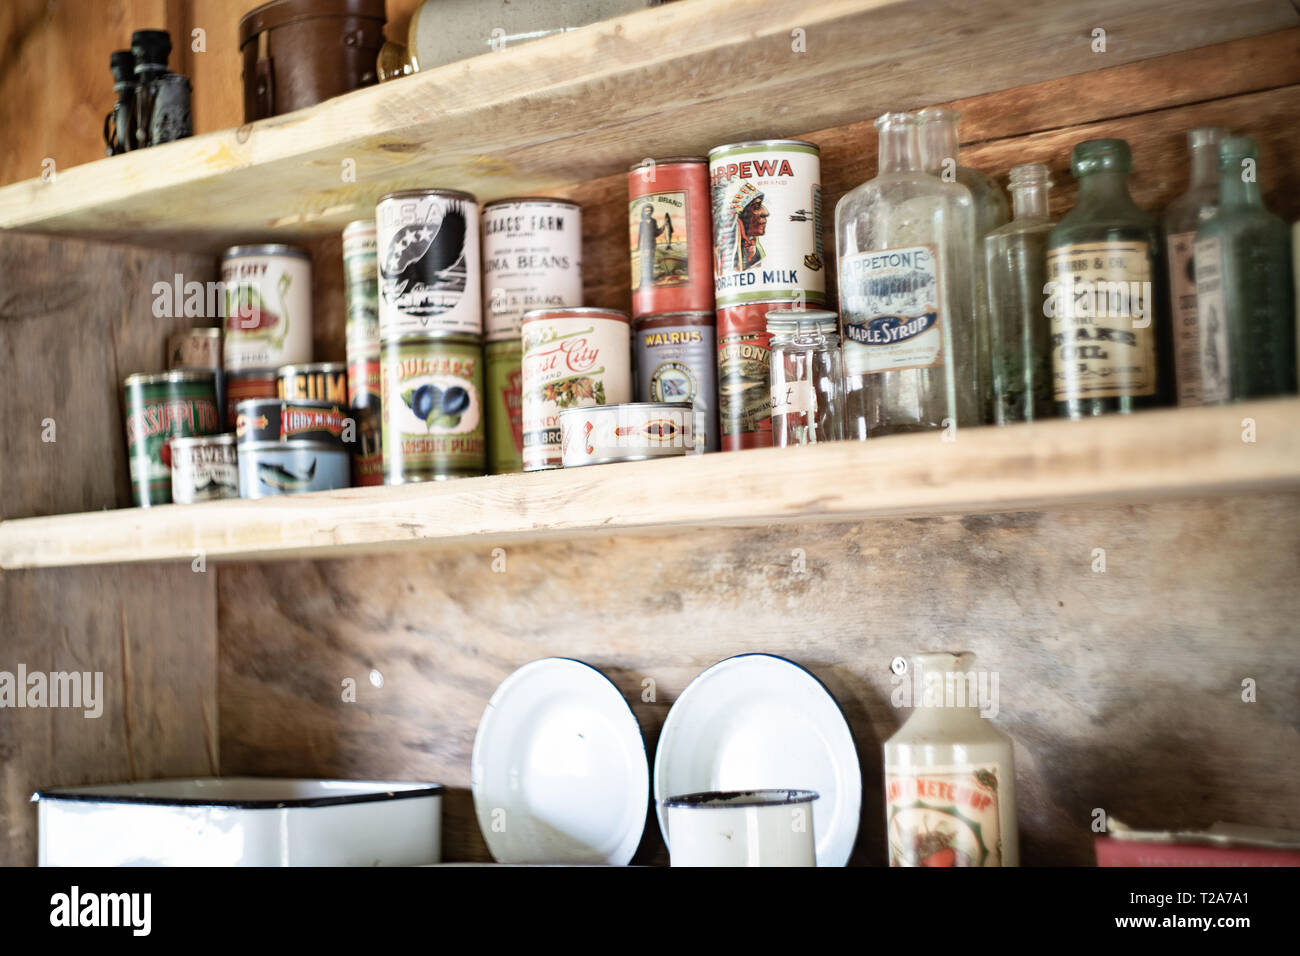 Shelf with old / traditional North American food tins and bottles on a shelf in a trapper's hut / cabin - Stock Image